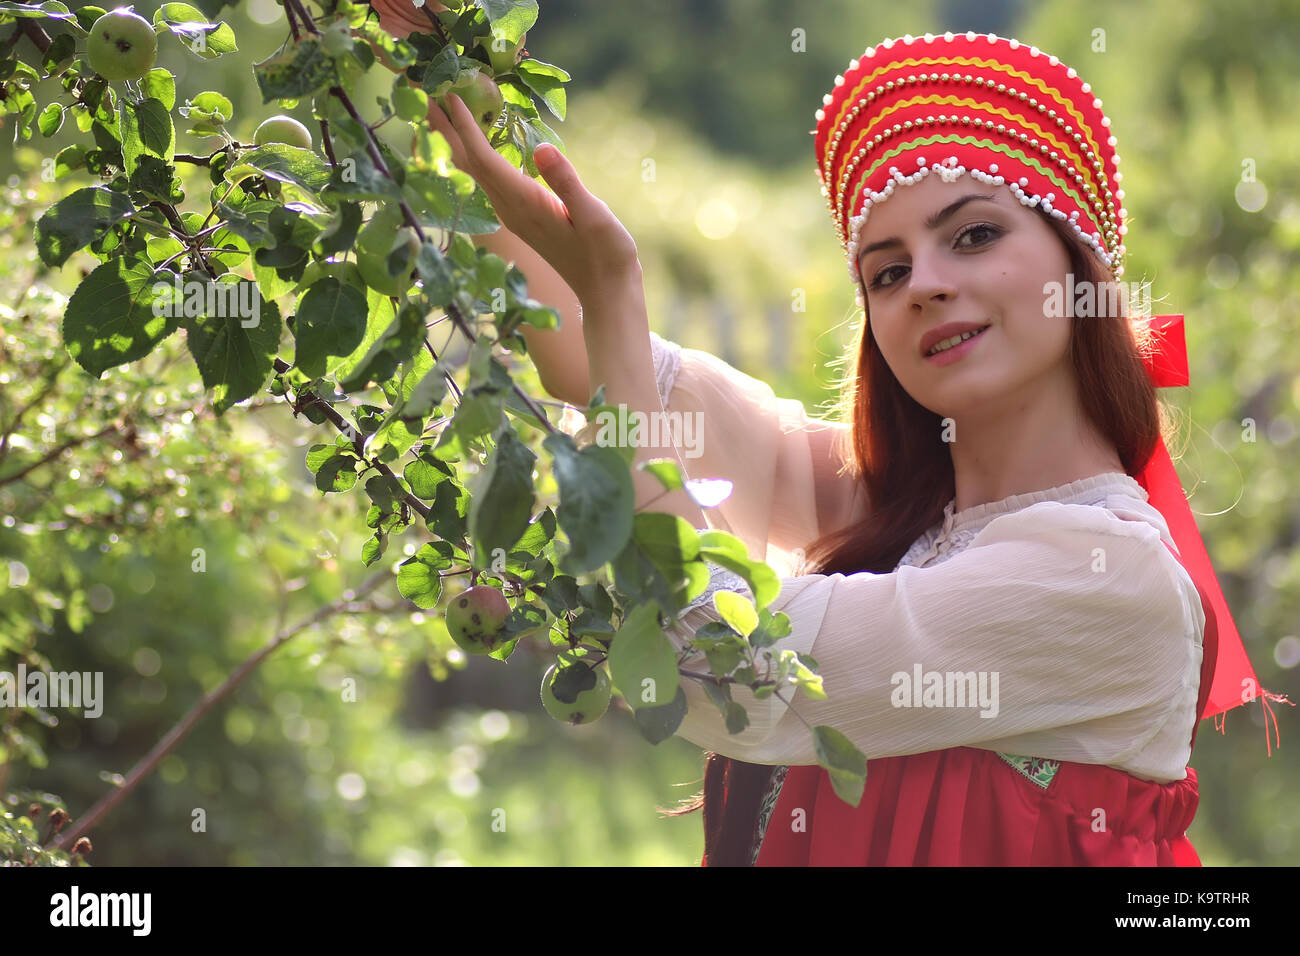 Slav in traditional dress collects the harvest of apples - Stock Image